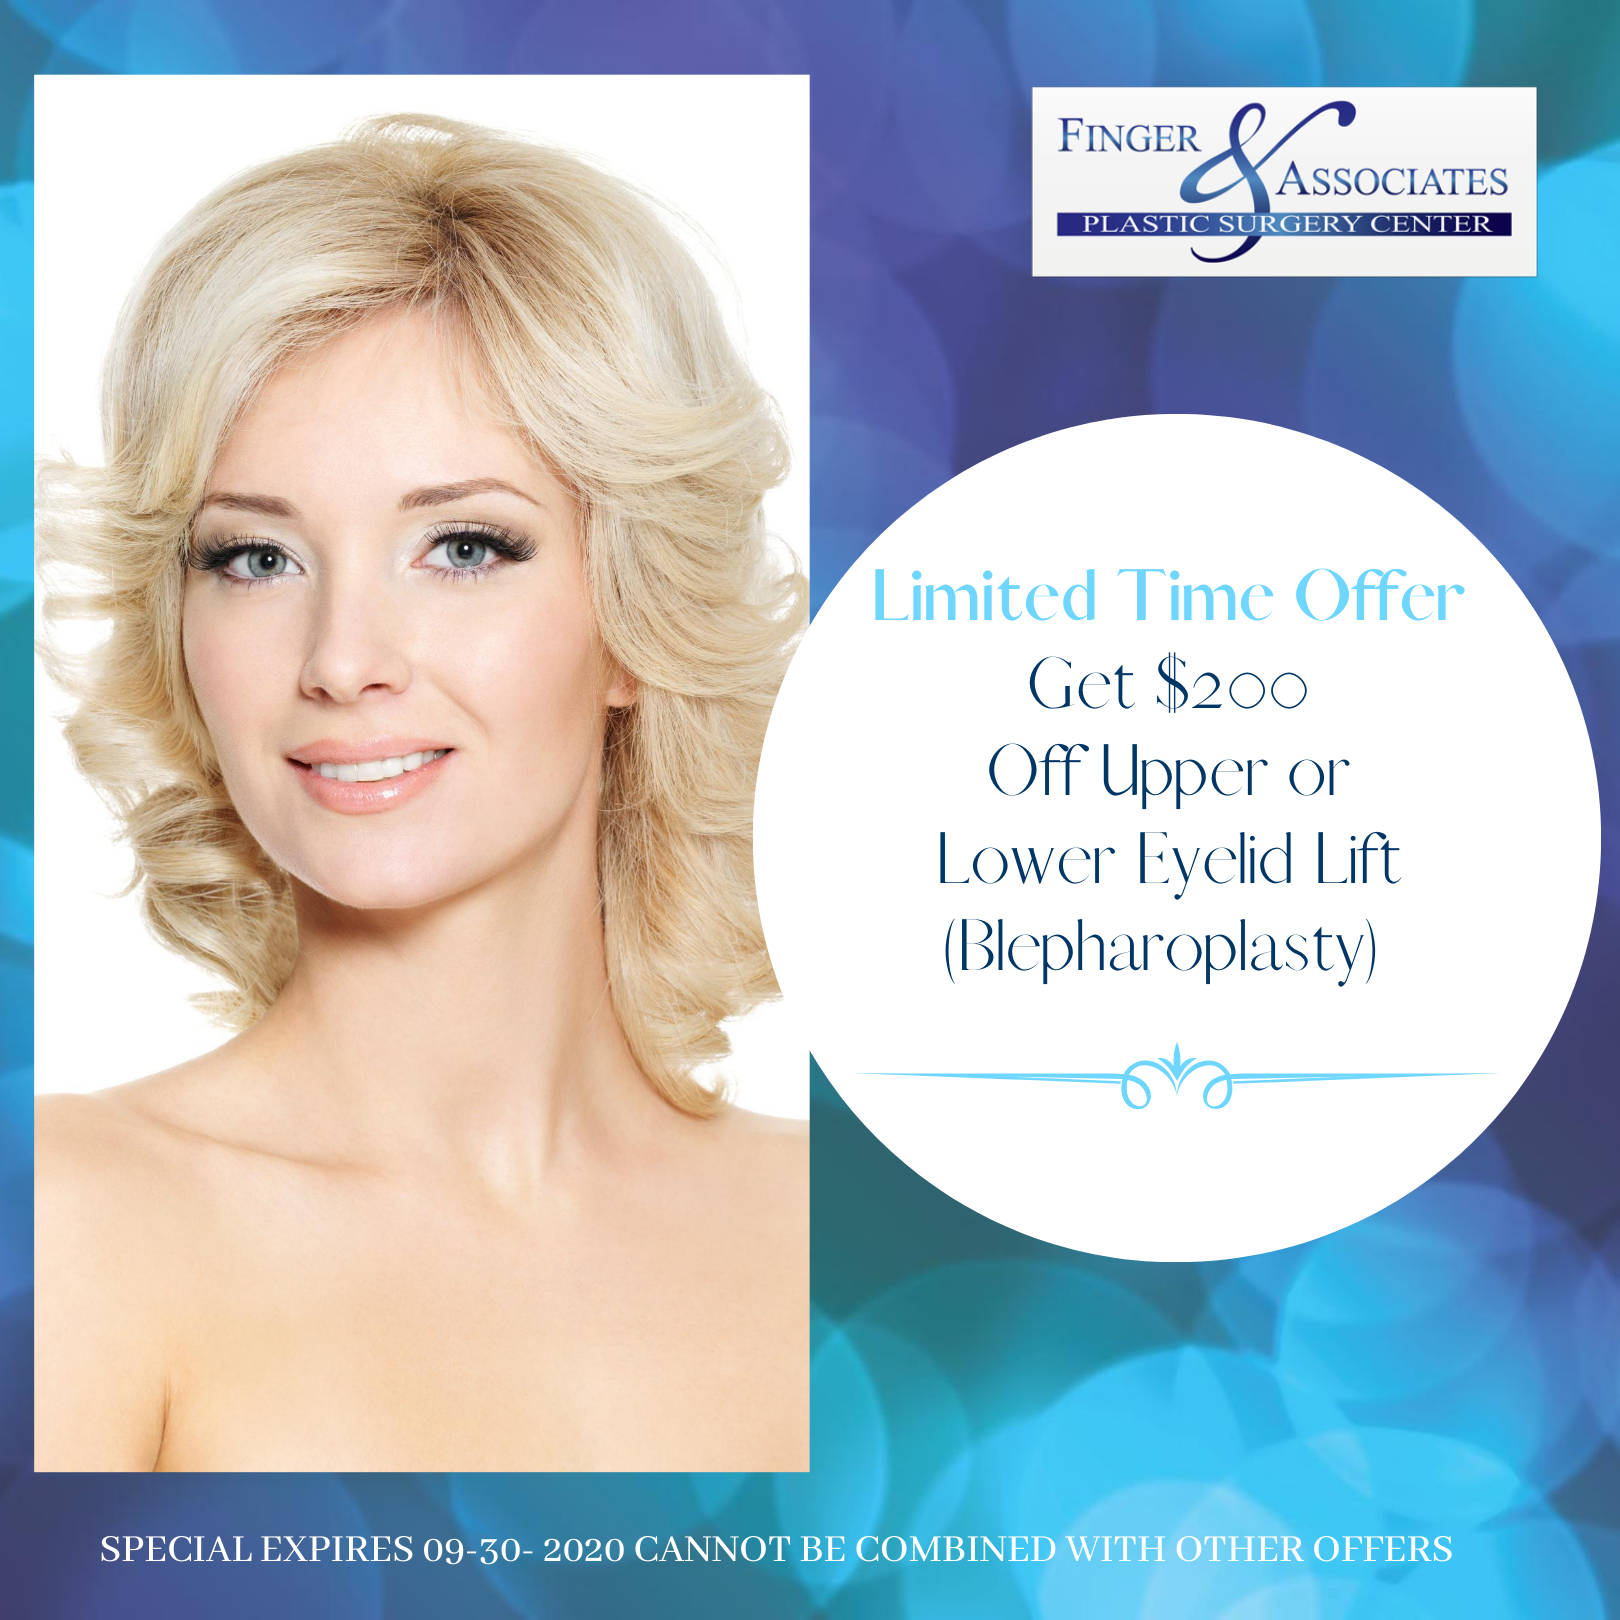 Eyelid Lift by Dr. Finger is now $200 Off